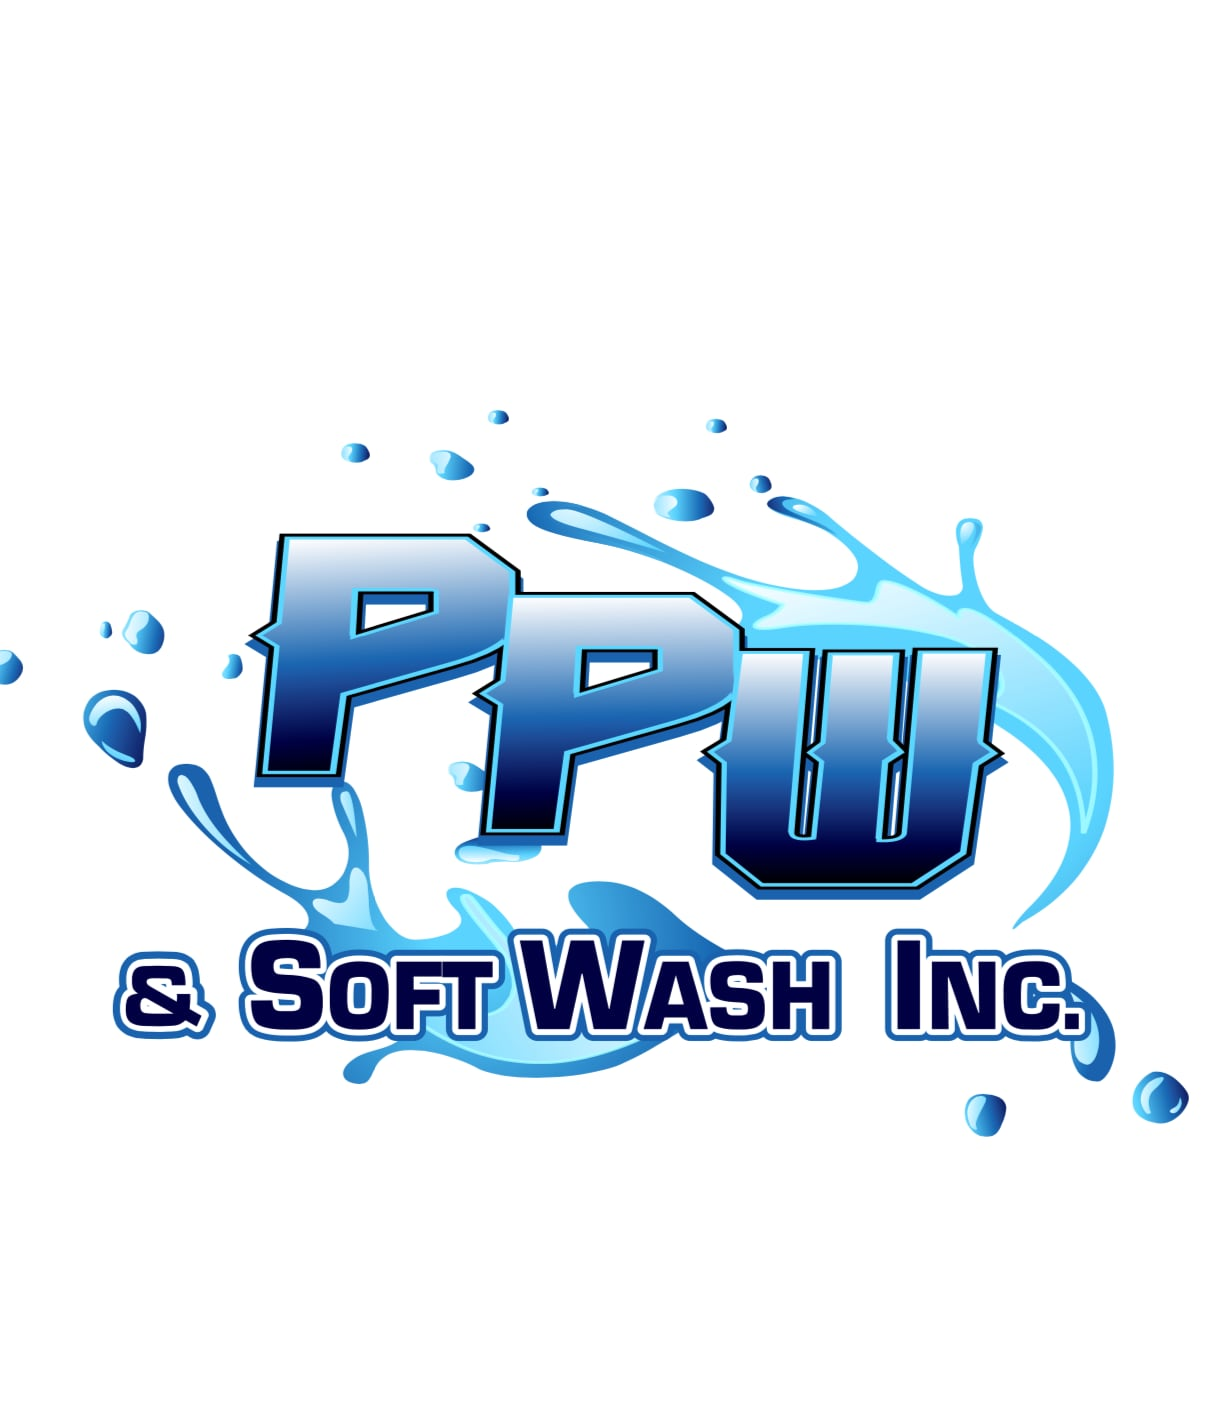 Prince Pressure Washing & Soft Wash Inc